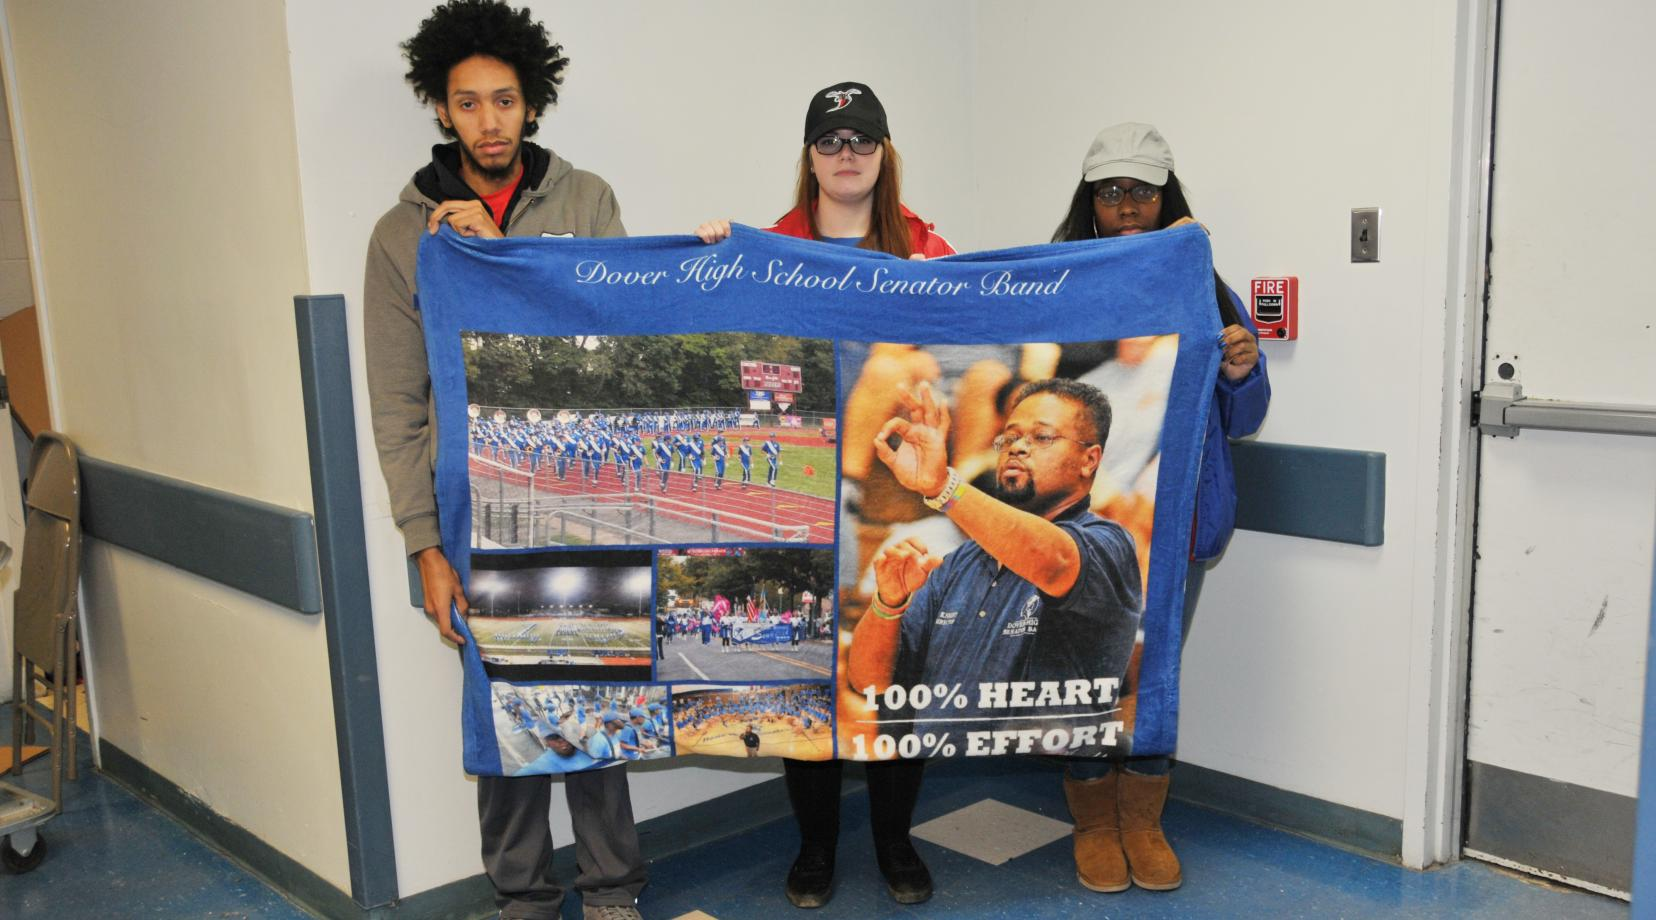 (L-r) Carlos Ortiz, Christina Trice and Akeya Rainer, former Dover HS Band members who were under Lenny Knight's director and then followed him to DSU, hold up a blanket of images that Dover HS presented to Mr. Knight at the end of his tenure there.